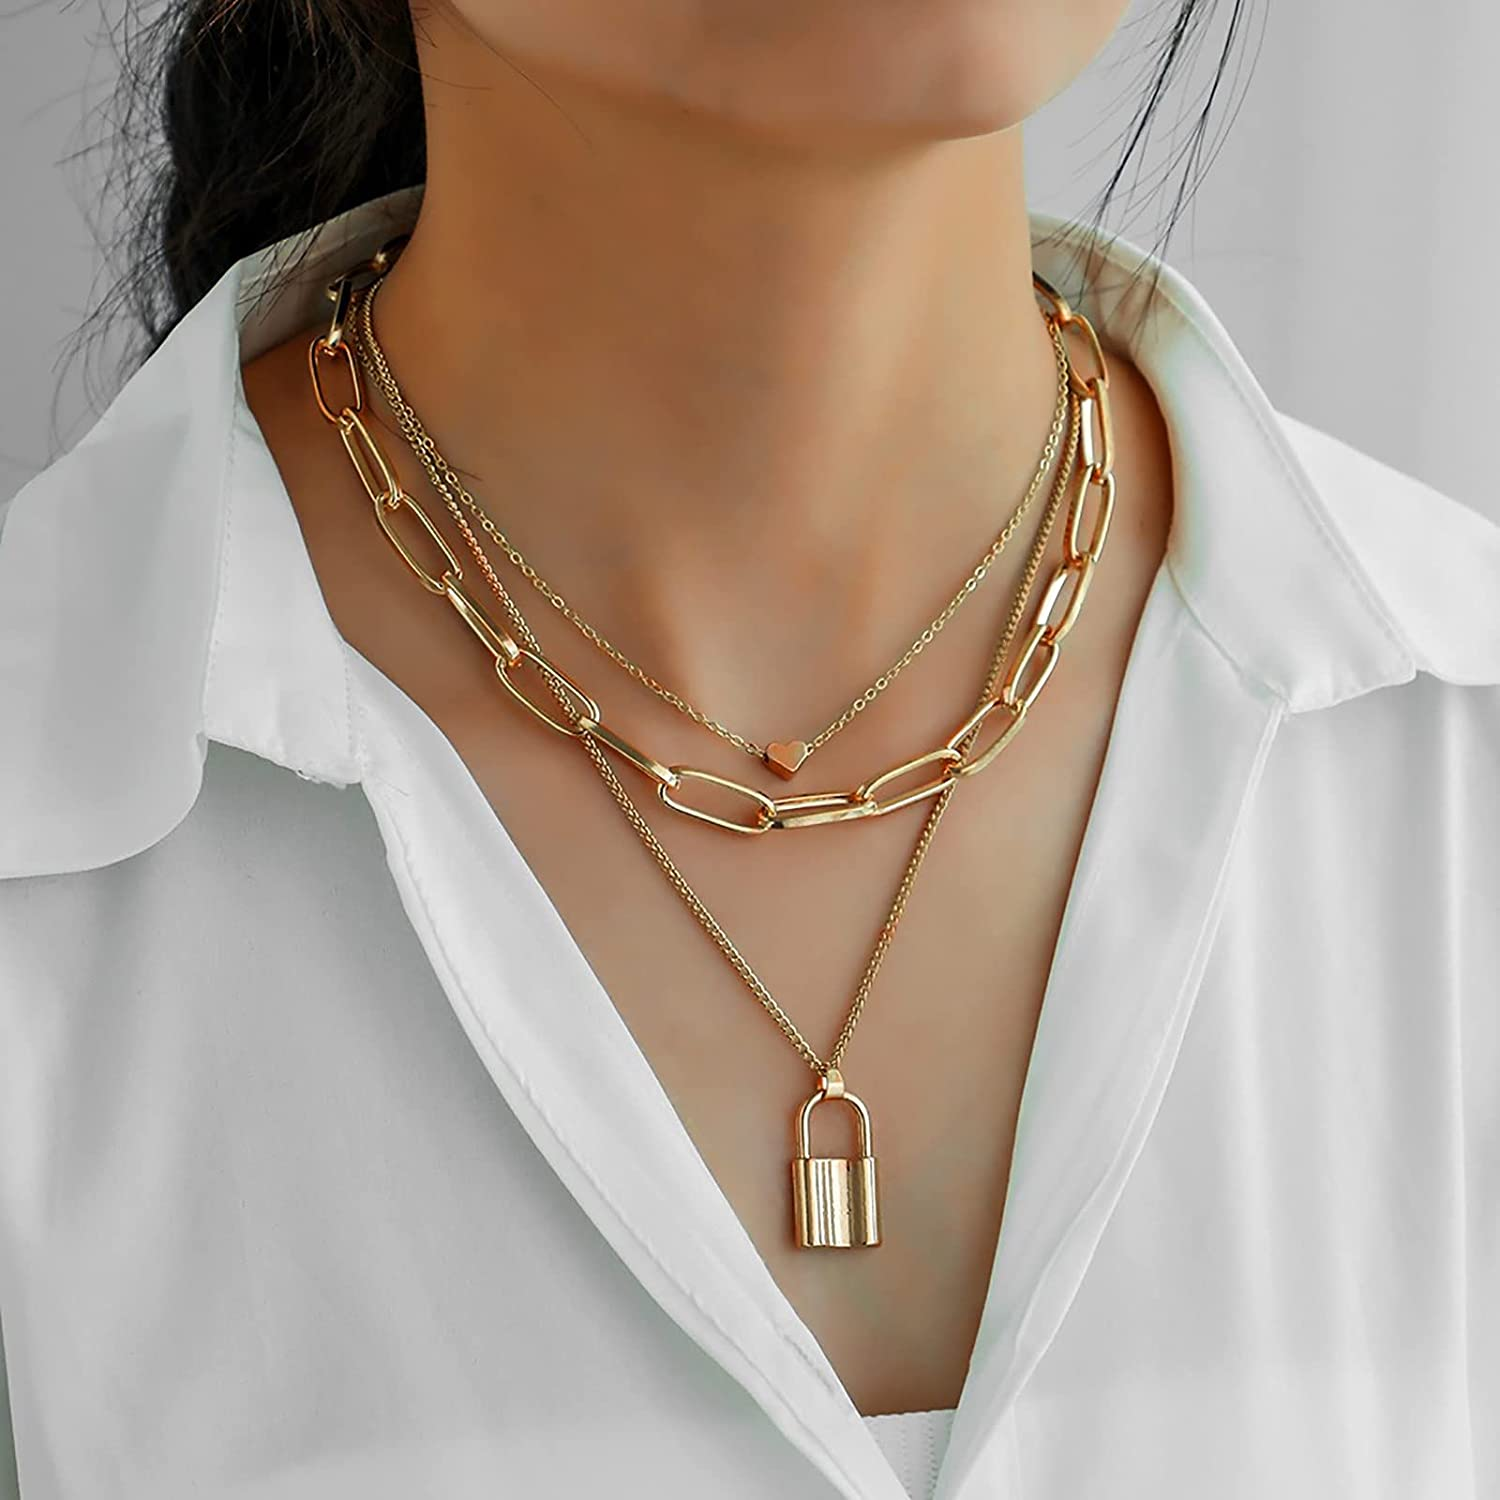 Necklaces for Women Trendy Layered Lock Necklace Lock Chain Necklaces Adjustable Multilayer Chain Y2K Necklace